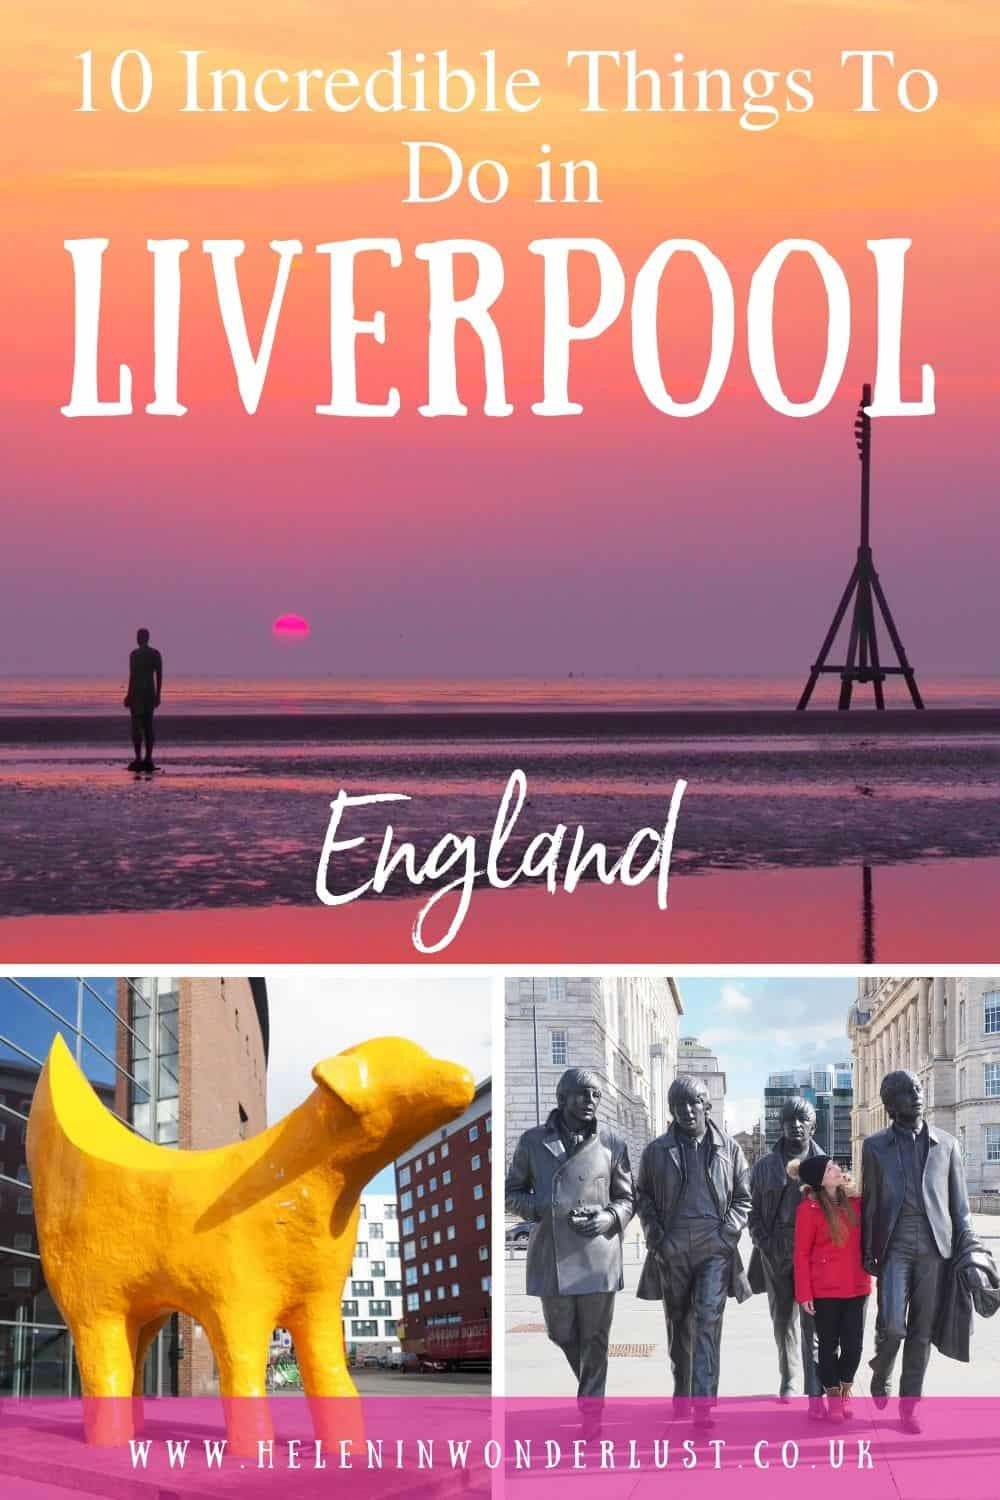 10 Incredible Things To Do in Liverpool, England